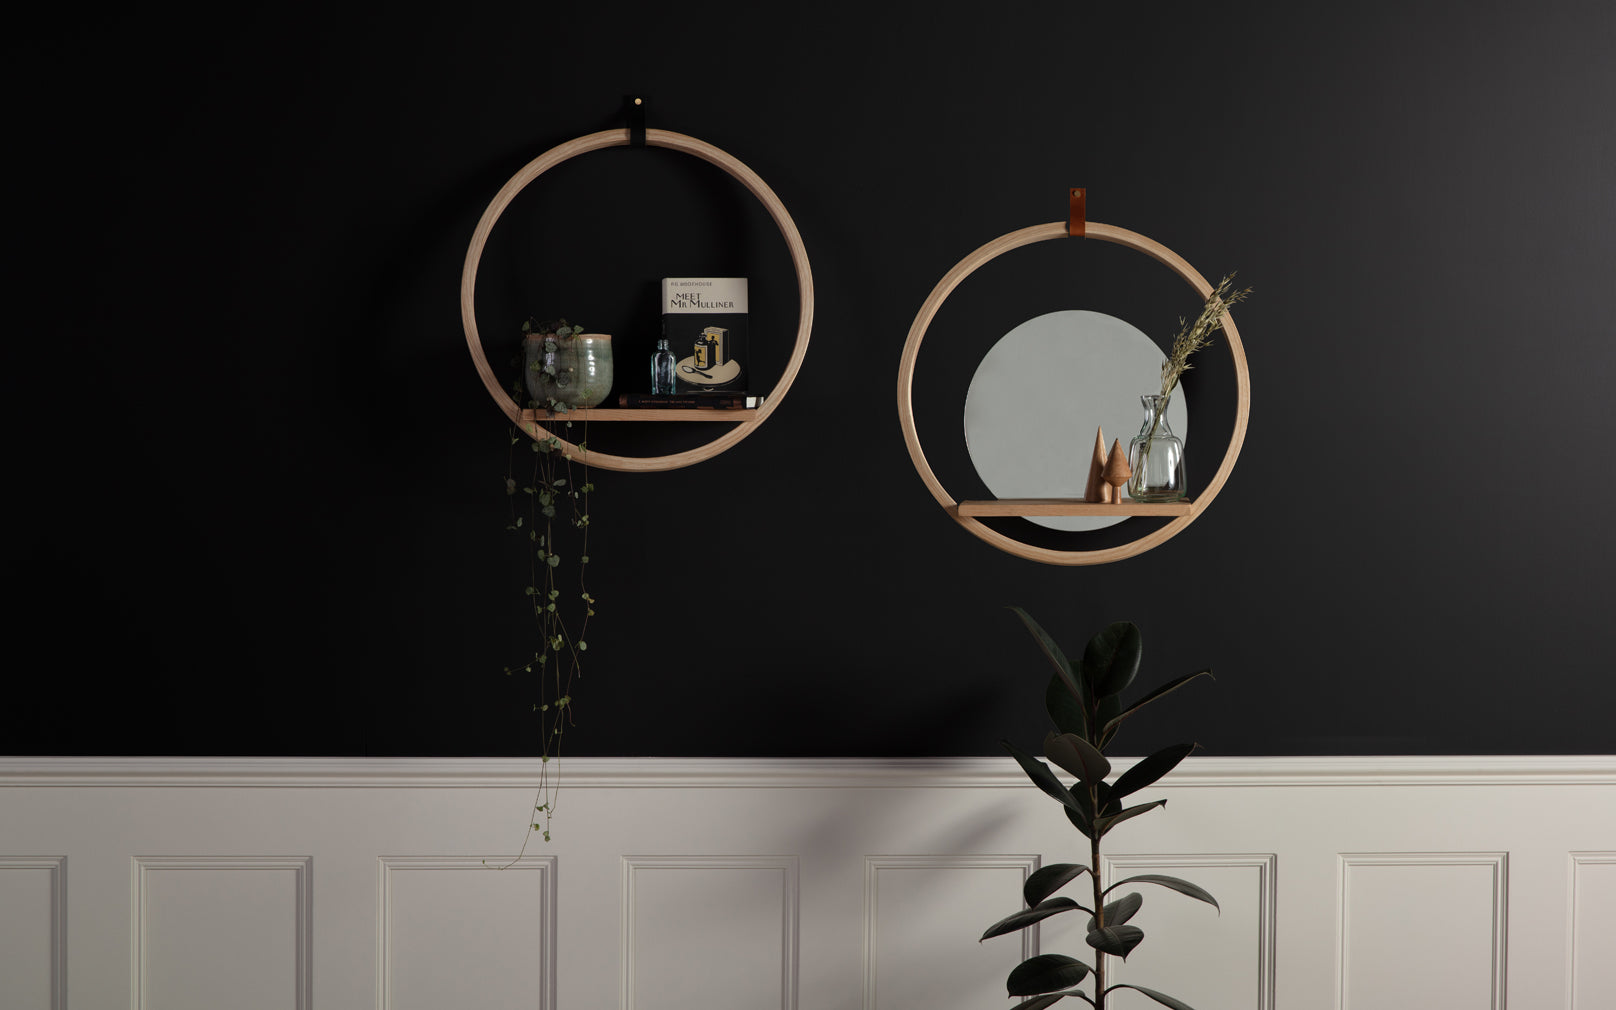 Housel Shelf and Housel Shelf with Mirror